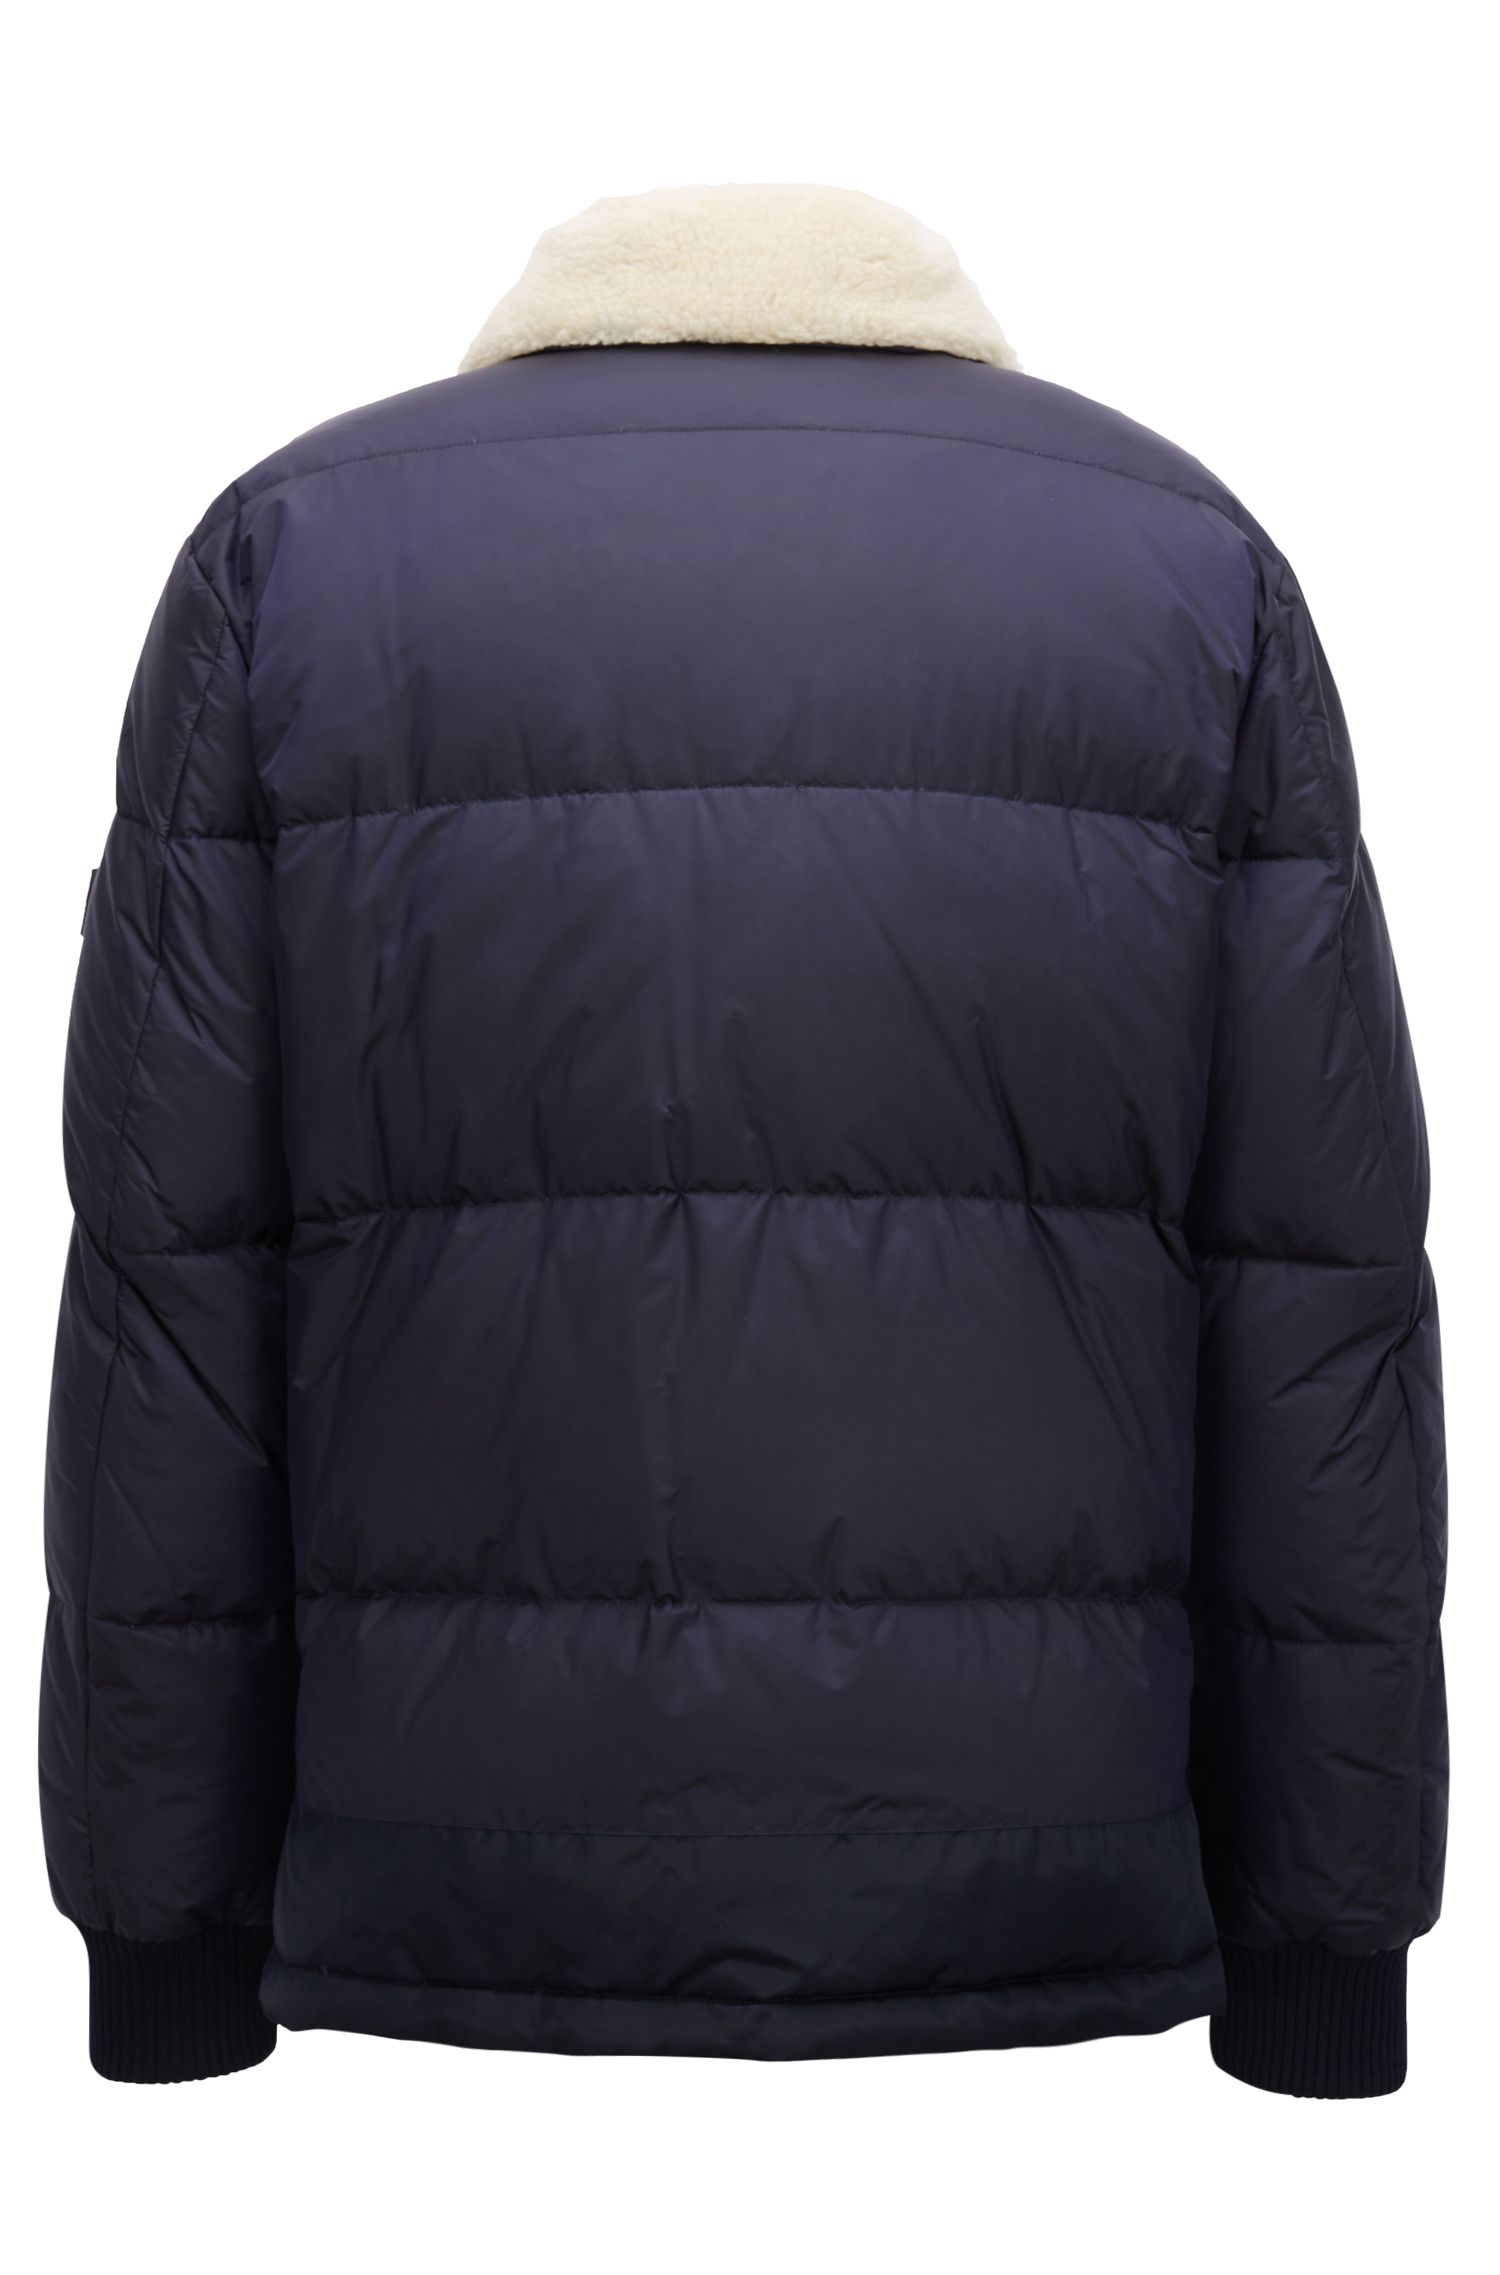 Water-repellent down-filled jacket with teddy-fabric collar